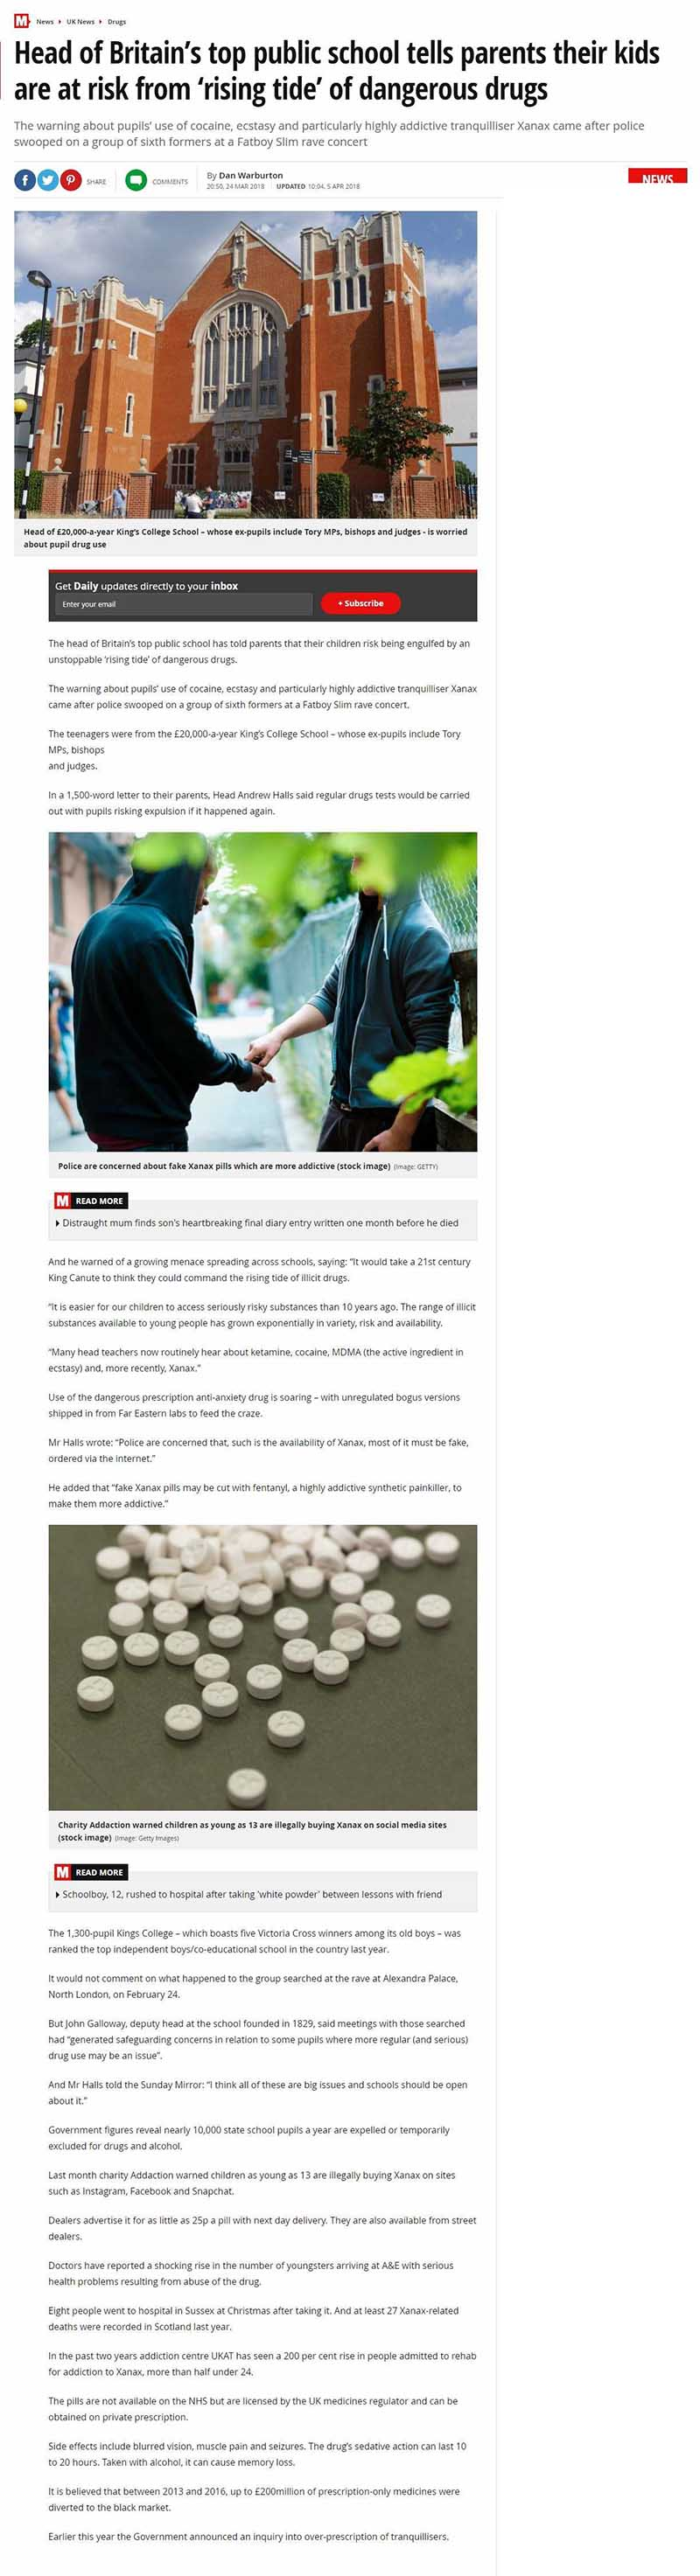 The Mirror - UKAT Records a 200 Percent Rise in Xanax Addiction Admissions